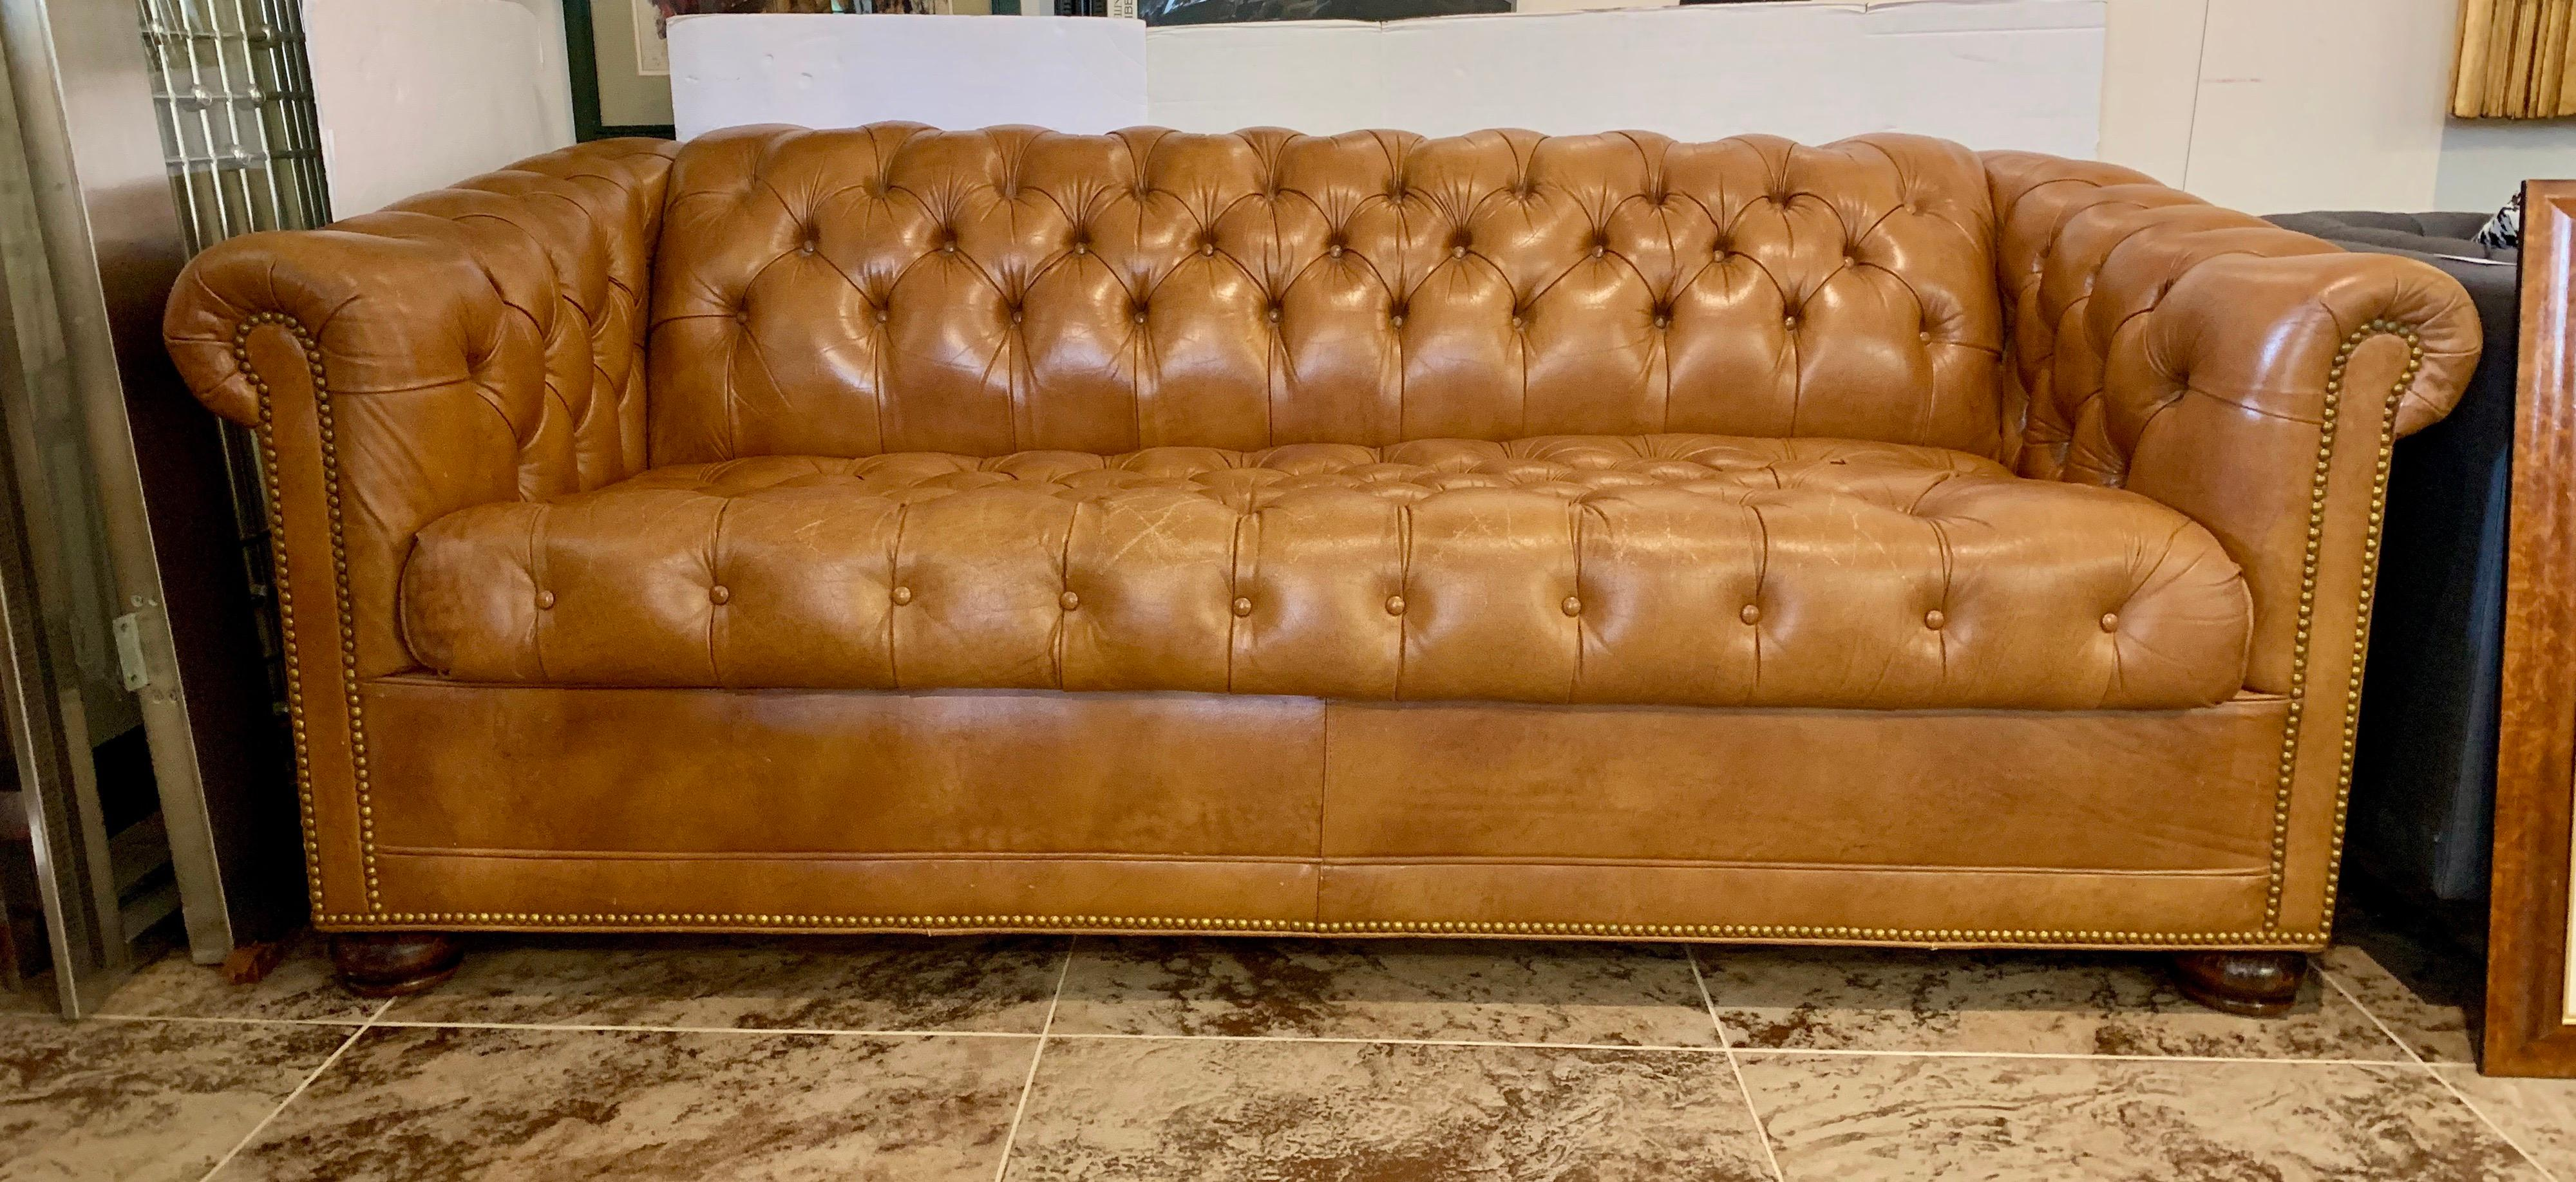 Charmant Magnificent Caramel Leather Chesterfield Sleeper Sofa With Nailhead Detail  And Tufted Leather Throughout. This Vintage